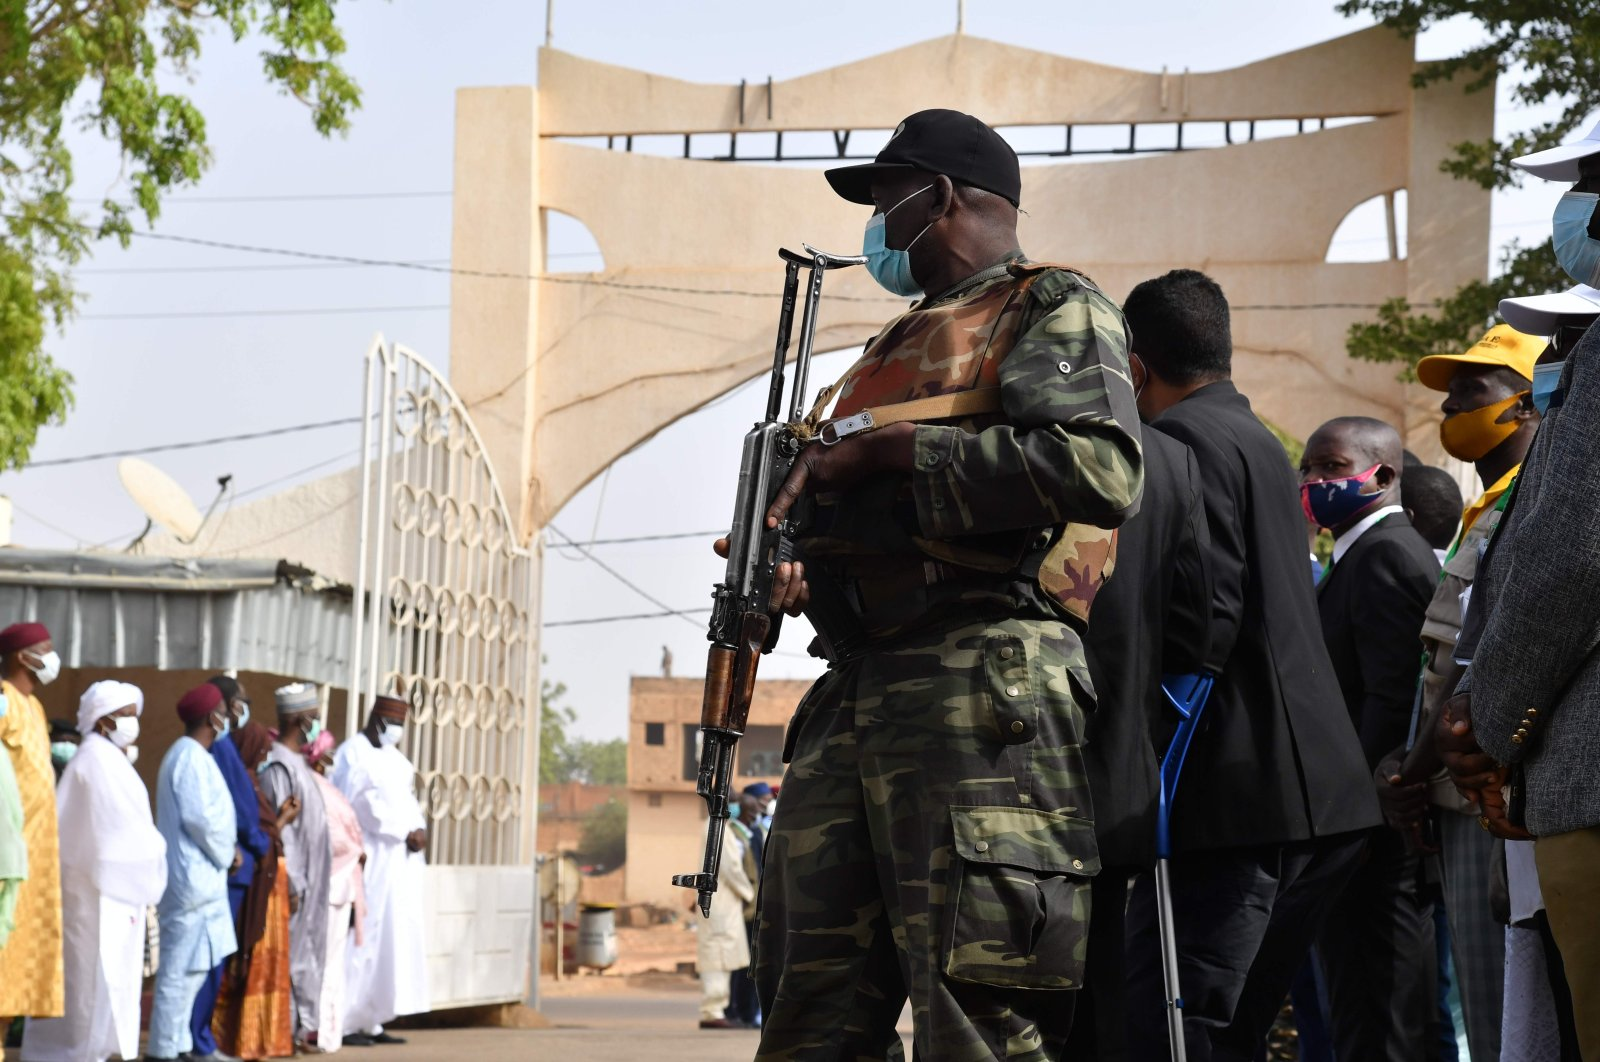 A Nigerien soldier stands guard as Niger's outgoing President Mahamadou Issoufou arrives at a polling station during Niger's presidential and legislative elections in Niamey, Dec. 27, 2020. (AFP Photo)